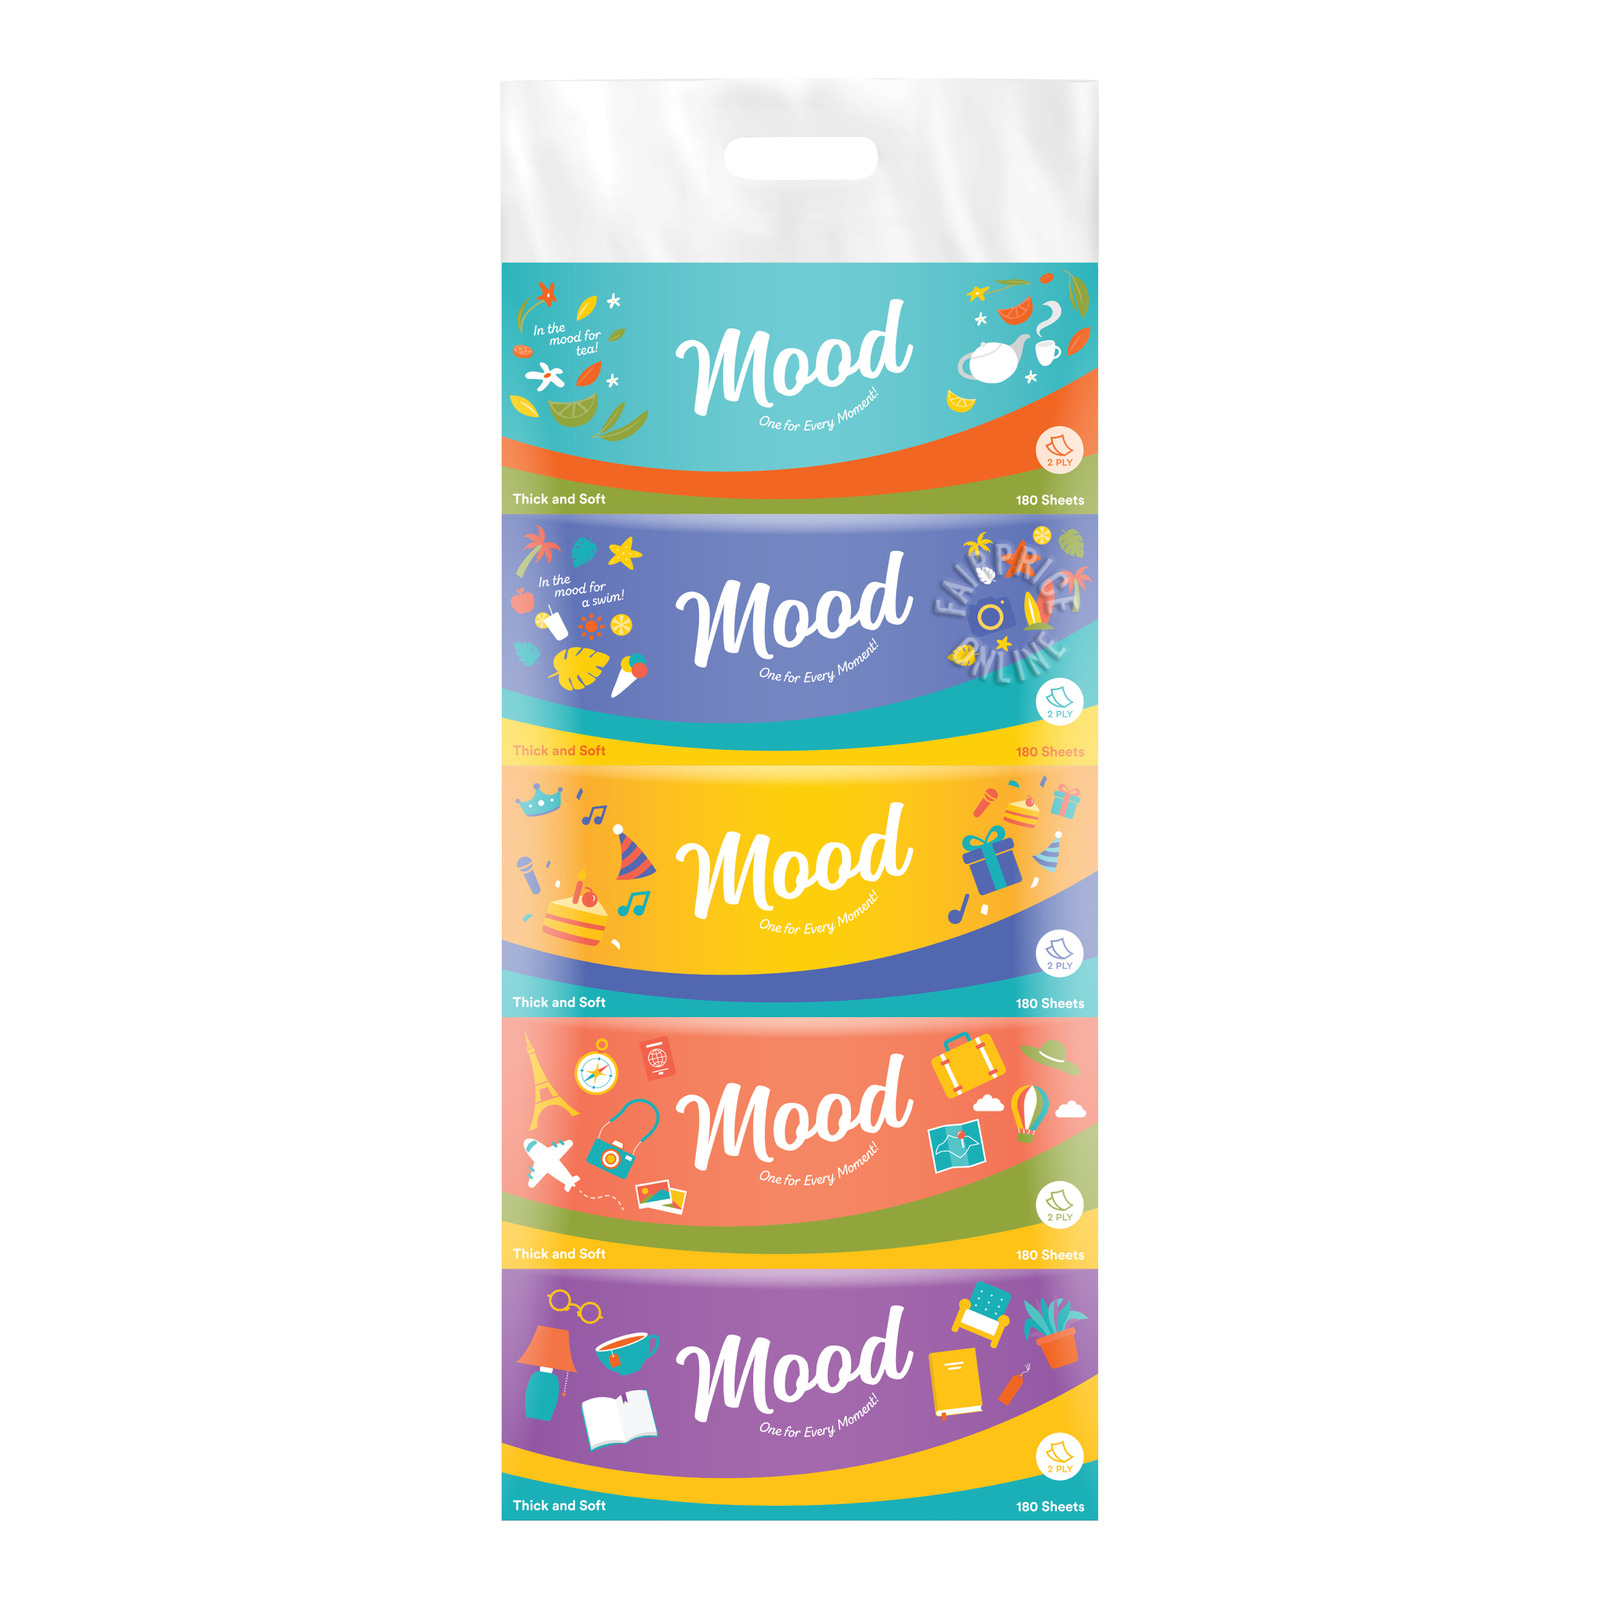 Mood Facial Tissue Boxes